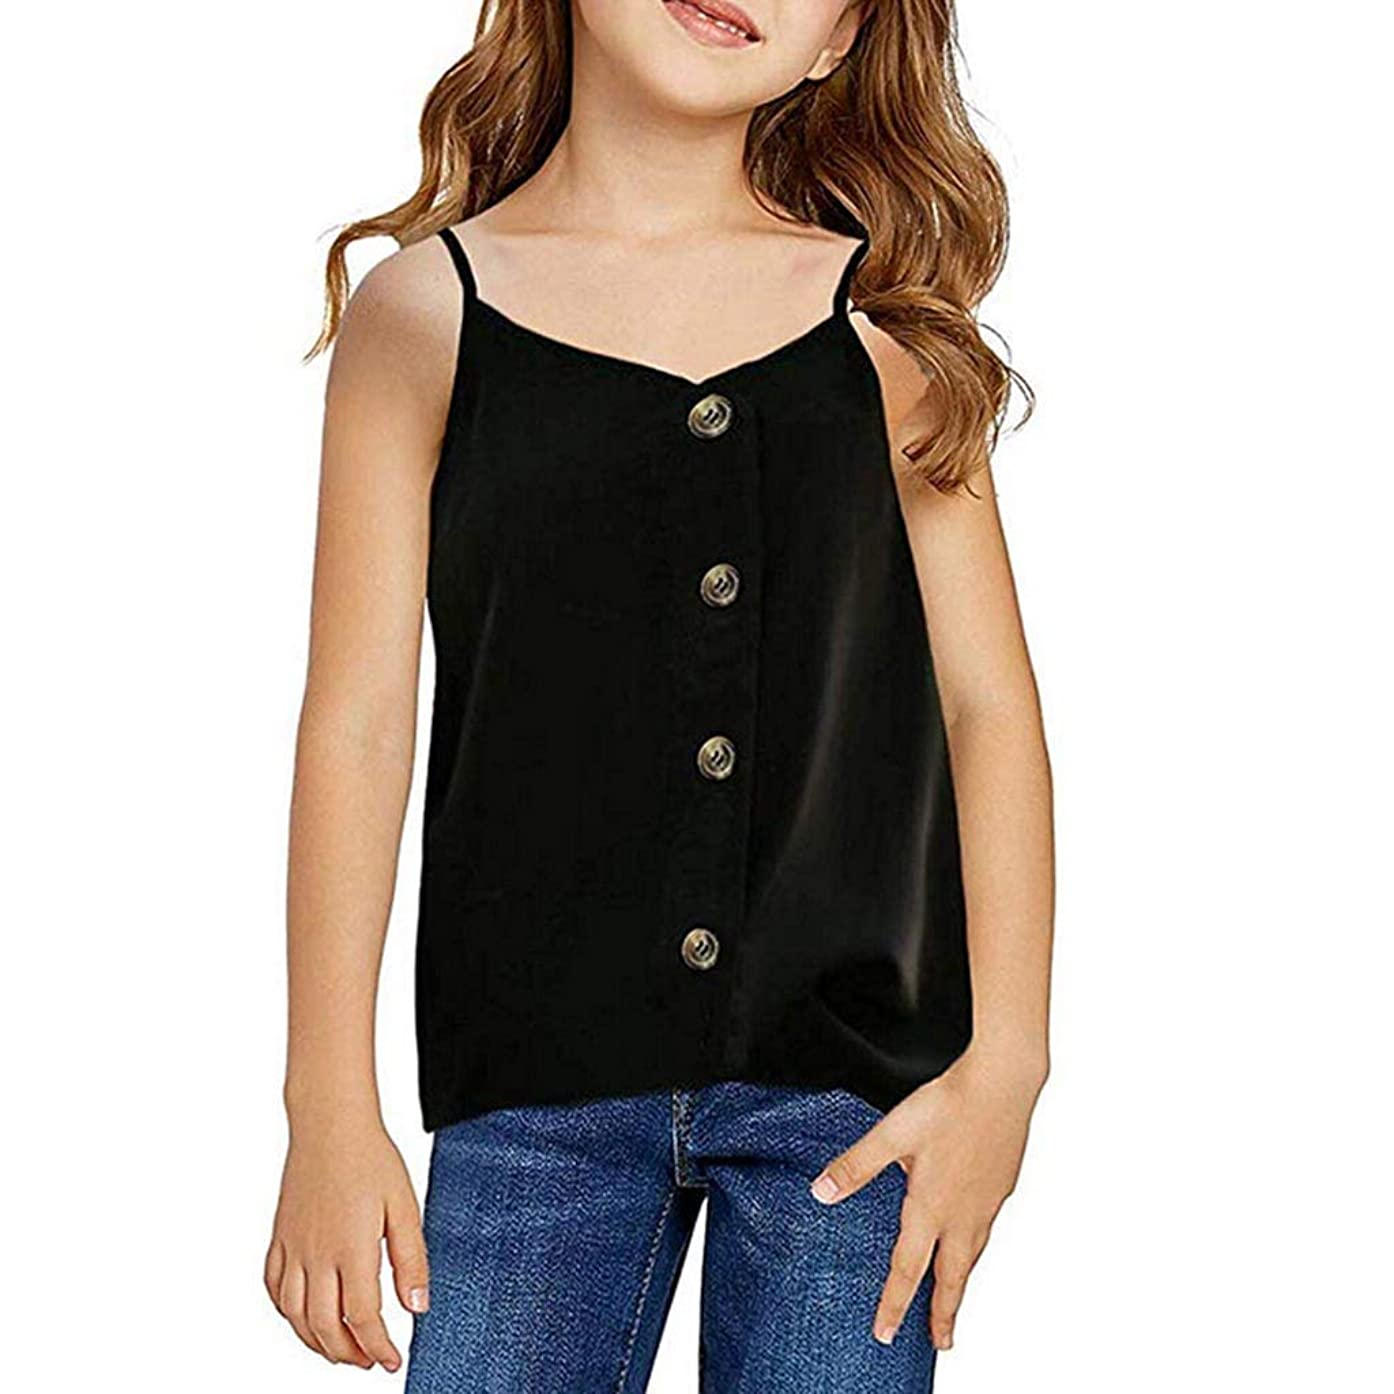 WUAI Tank Tops for Baby Girls, Kids Casual Sleeveless Ribbed Seamless Button Vests Summer Cami Tops Blouse